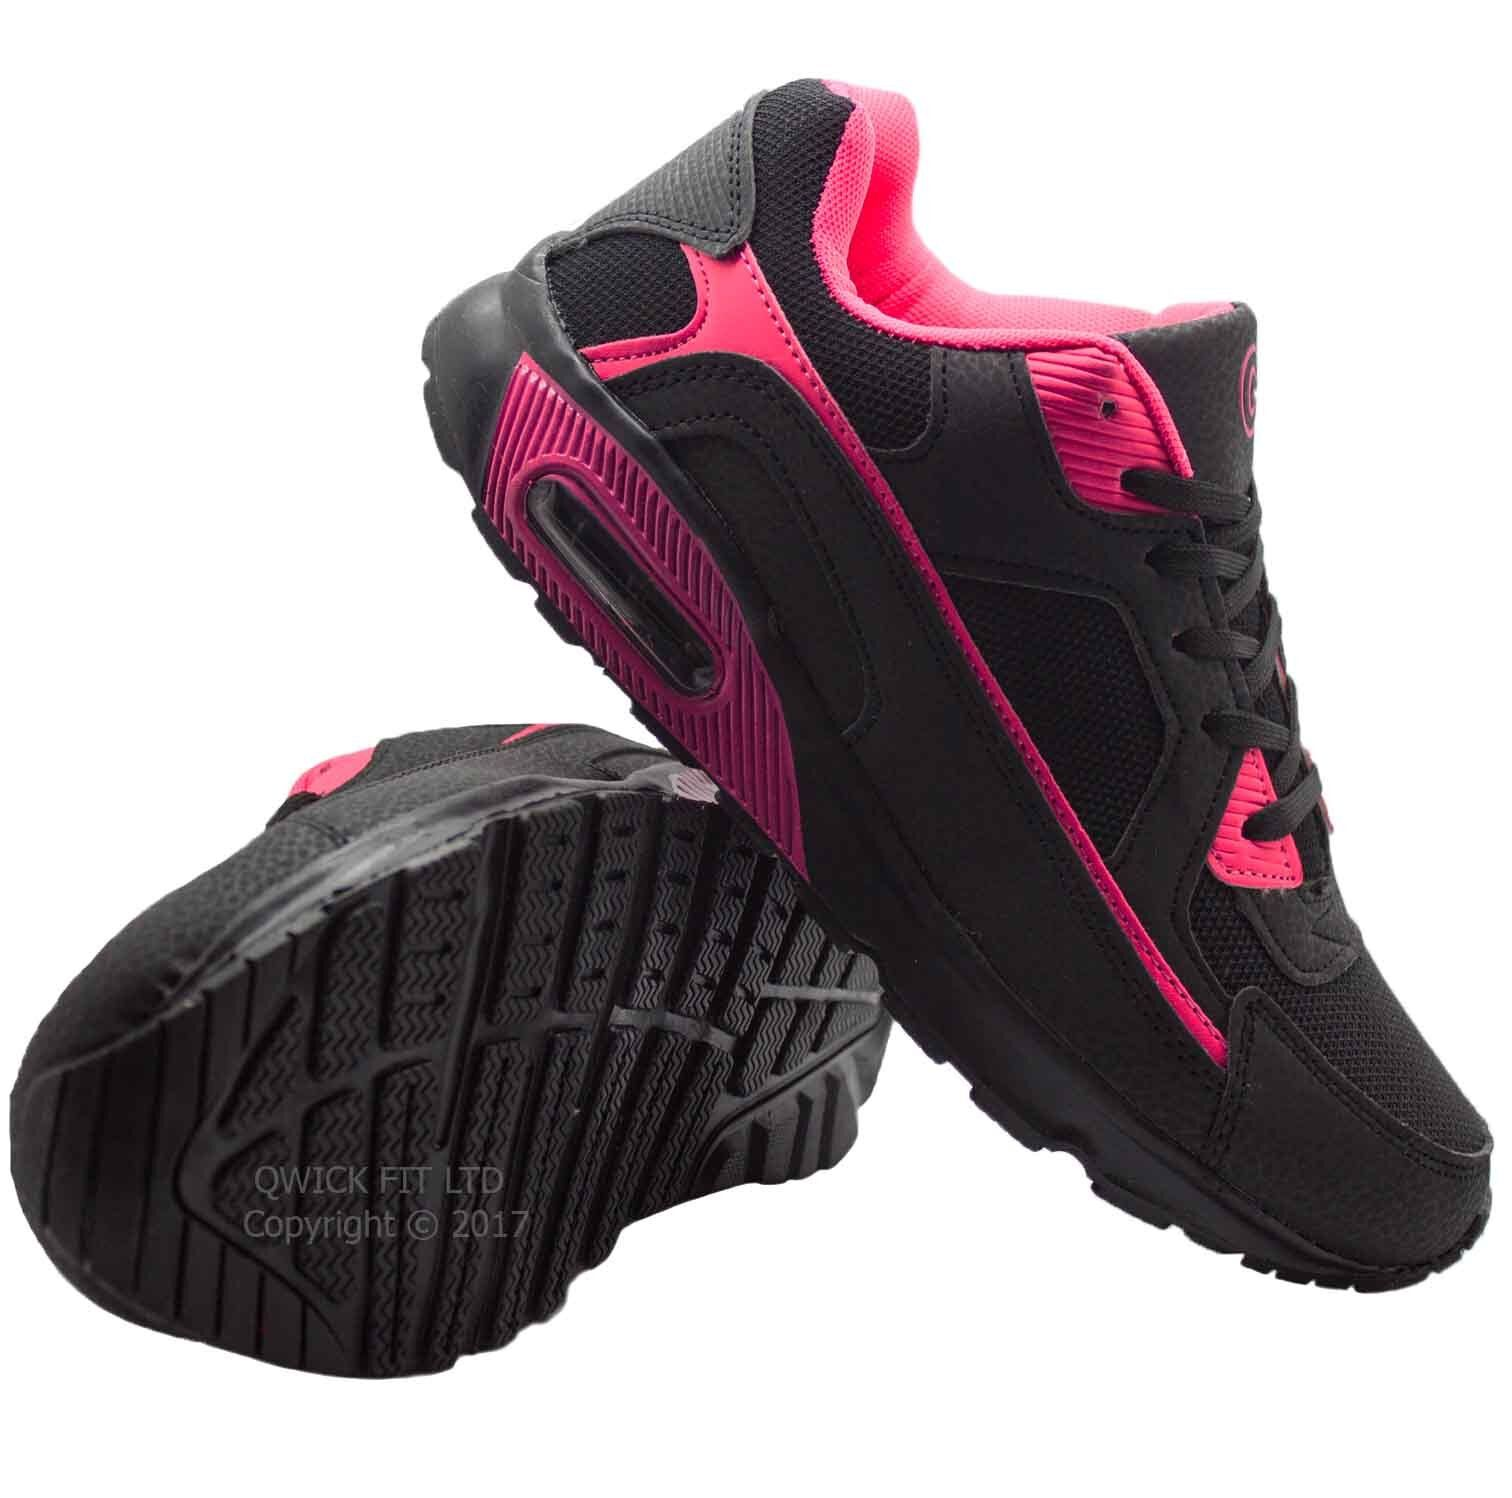 LADIES WOMENS TRAINERS CASUAL GYM FITNESS PE RUNNING JOGGING LACE UP SHOES SIZE